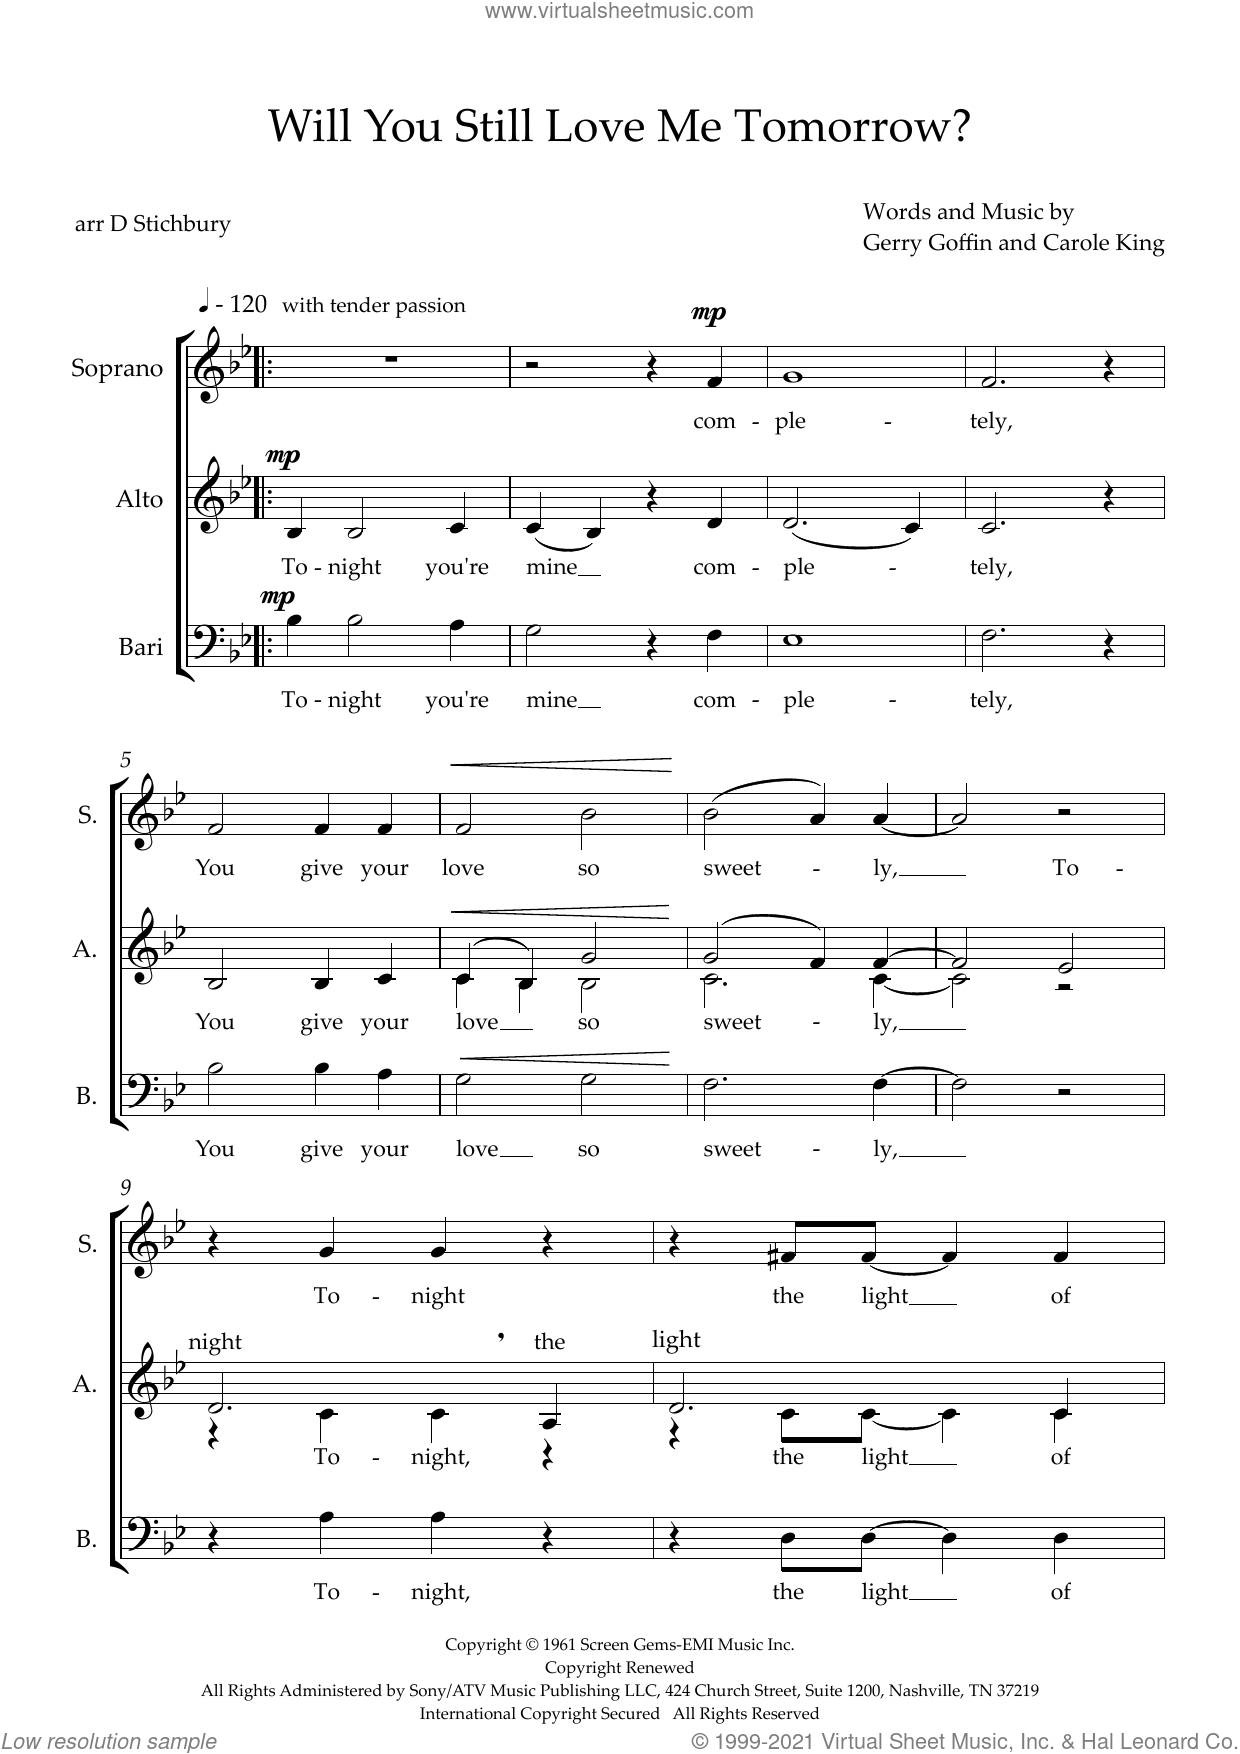 Will You Love Me Tomorrow (Will You Still Love Me Tomorrow) (arr. Dom Stichbury) sheet music for choir (SAB: soprano, alto, bass) by The Shirelles, Dom Stichbury, Carole King and Gerry Goffin, intermediate skill level